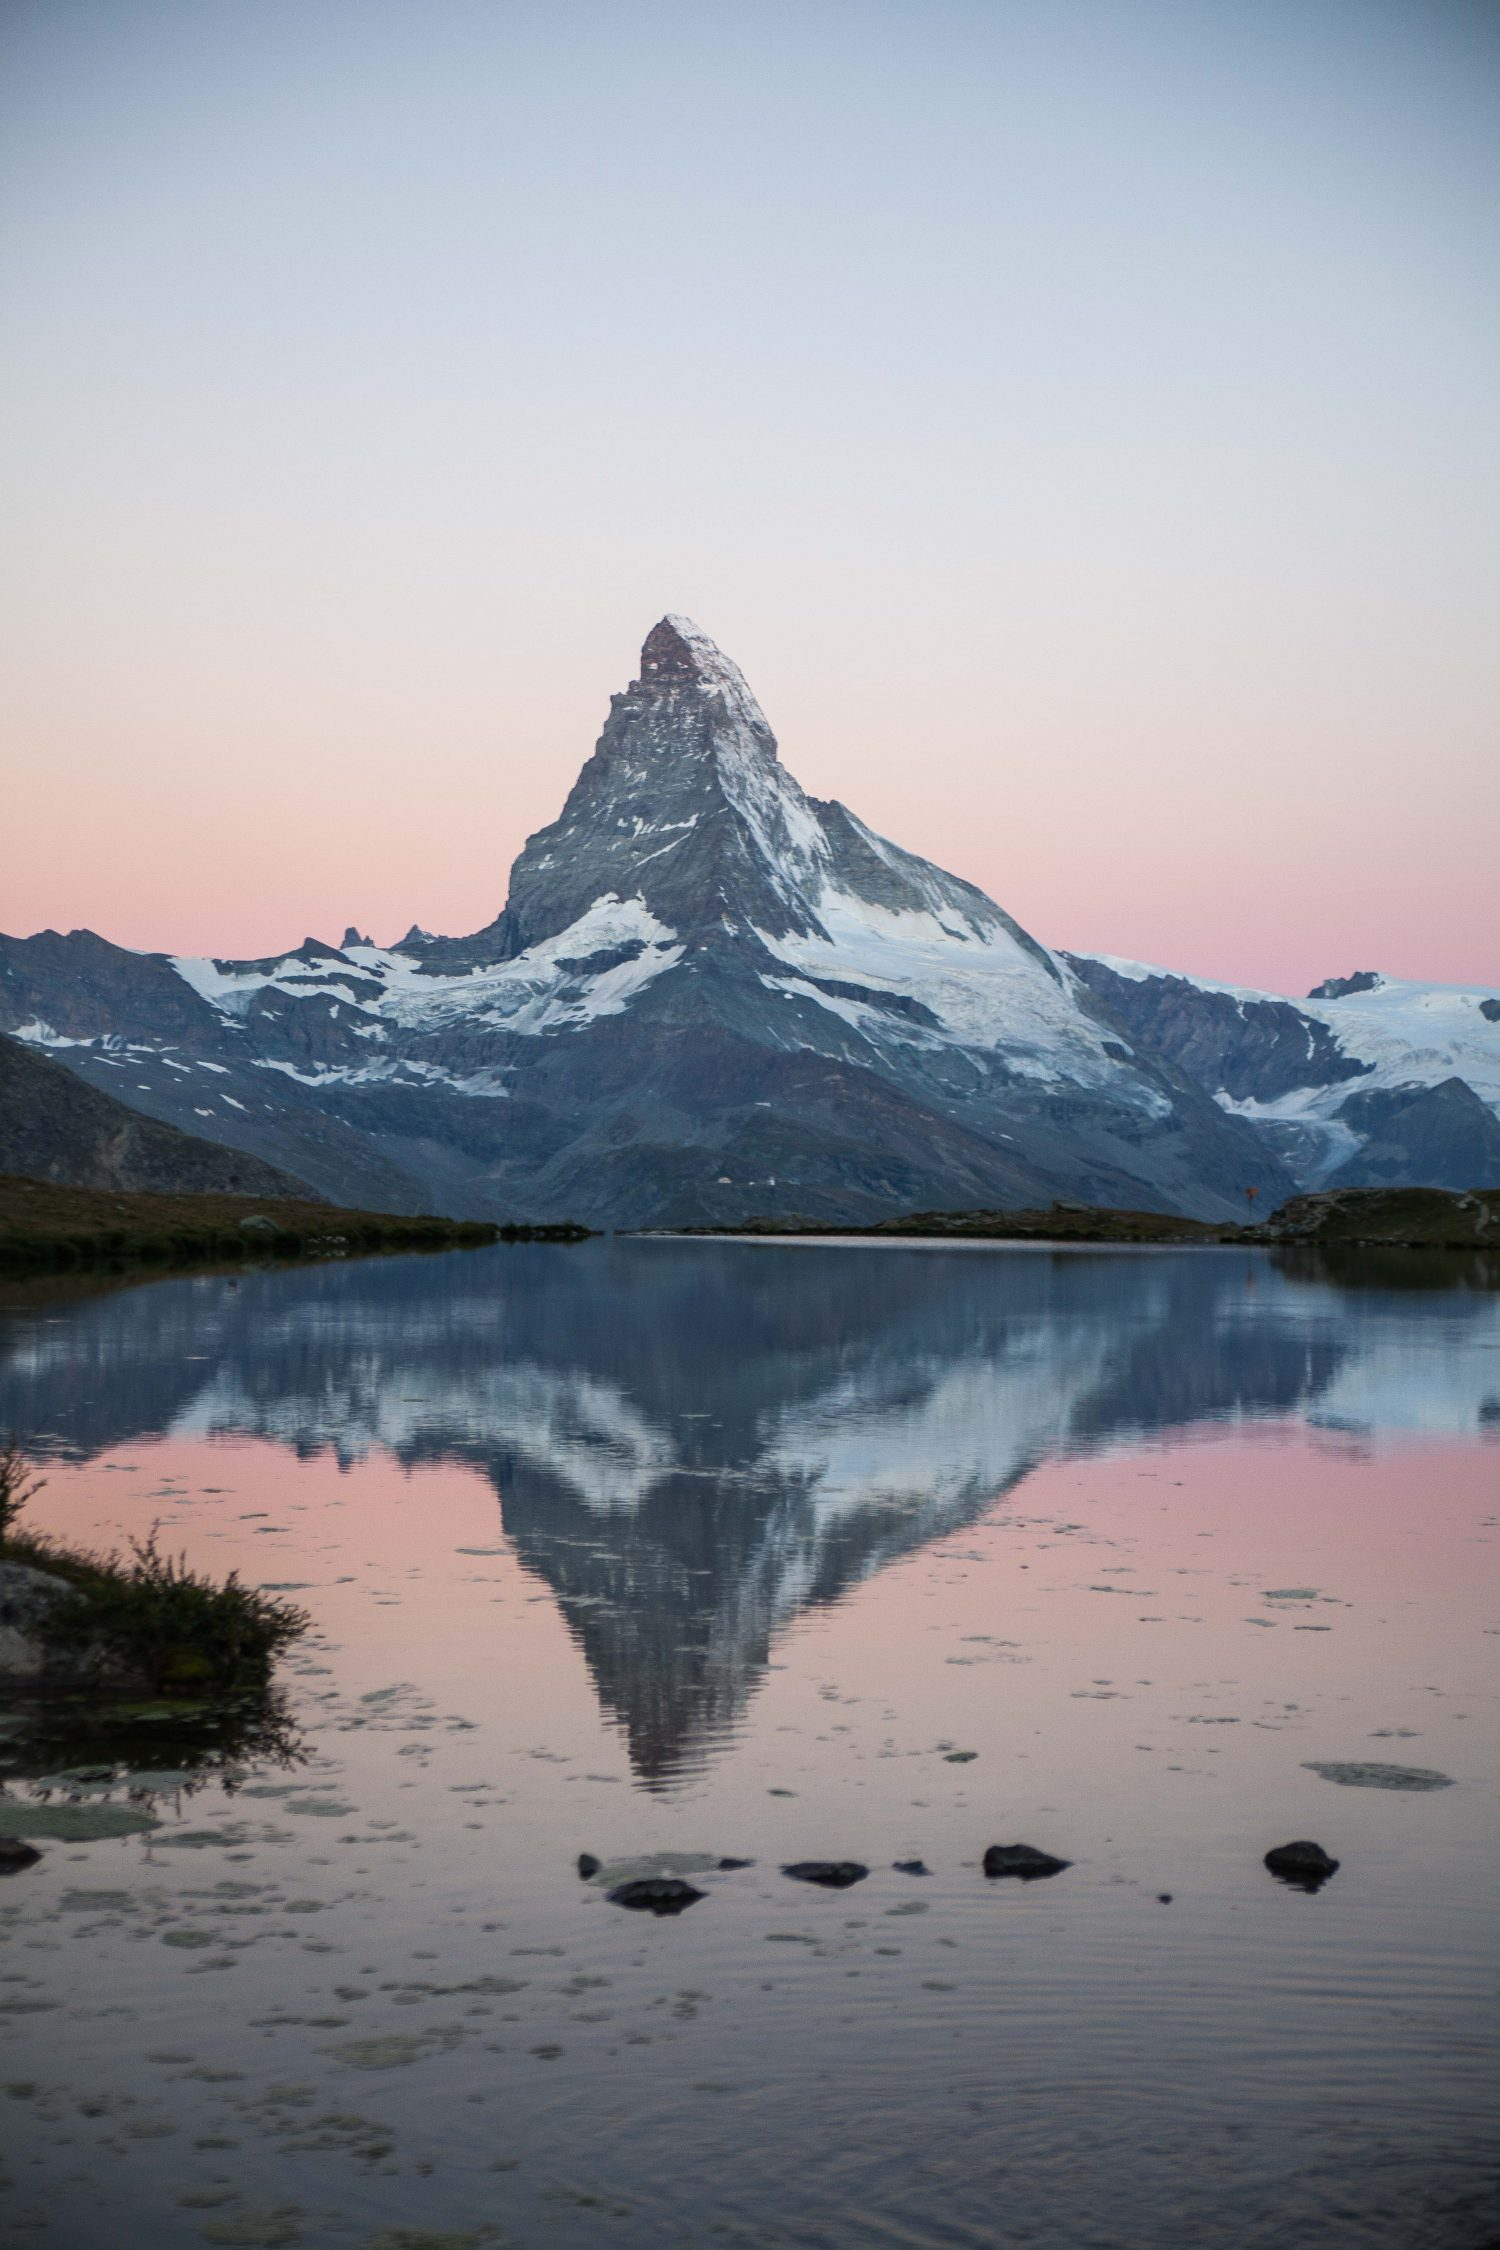 Swiss Food Festival & Matterhorn